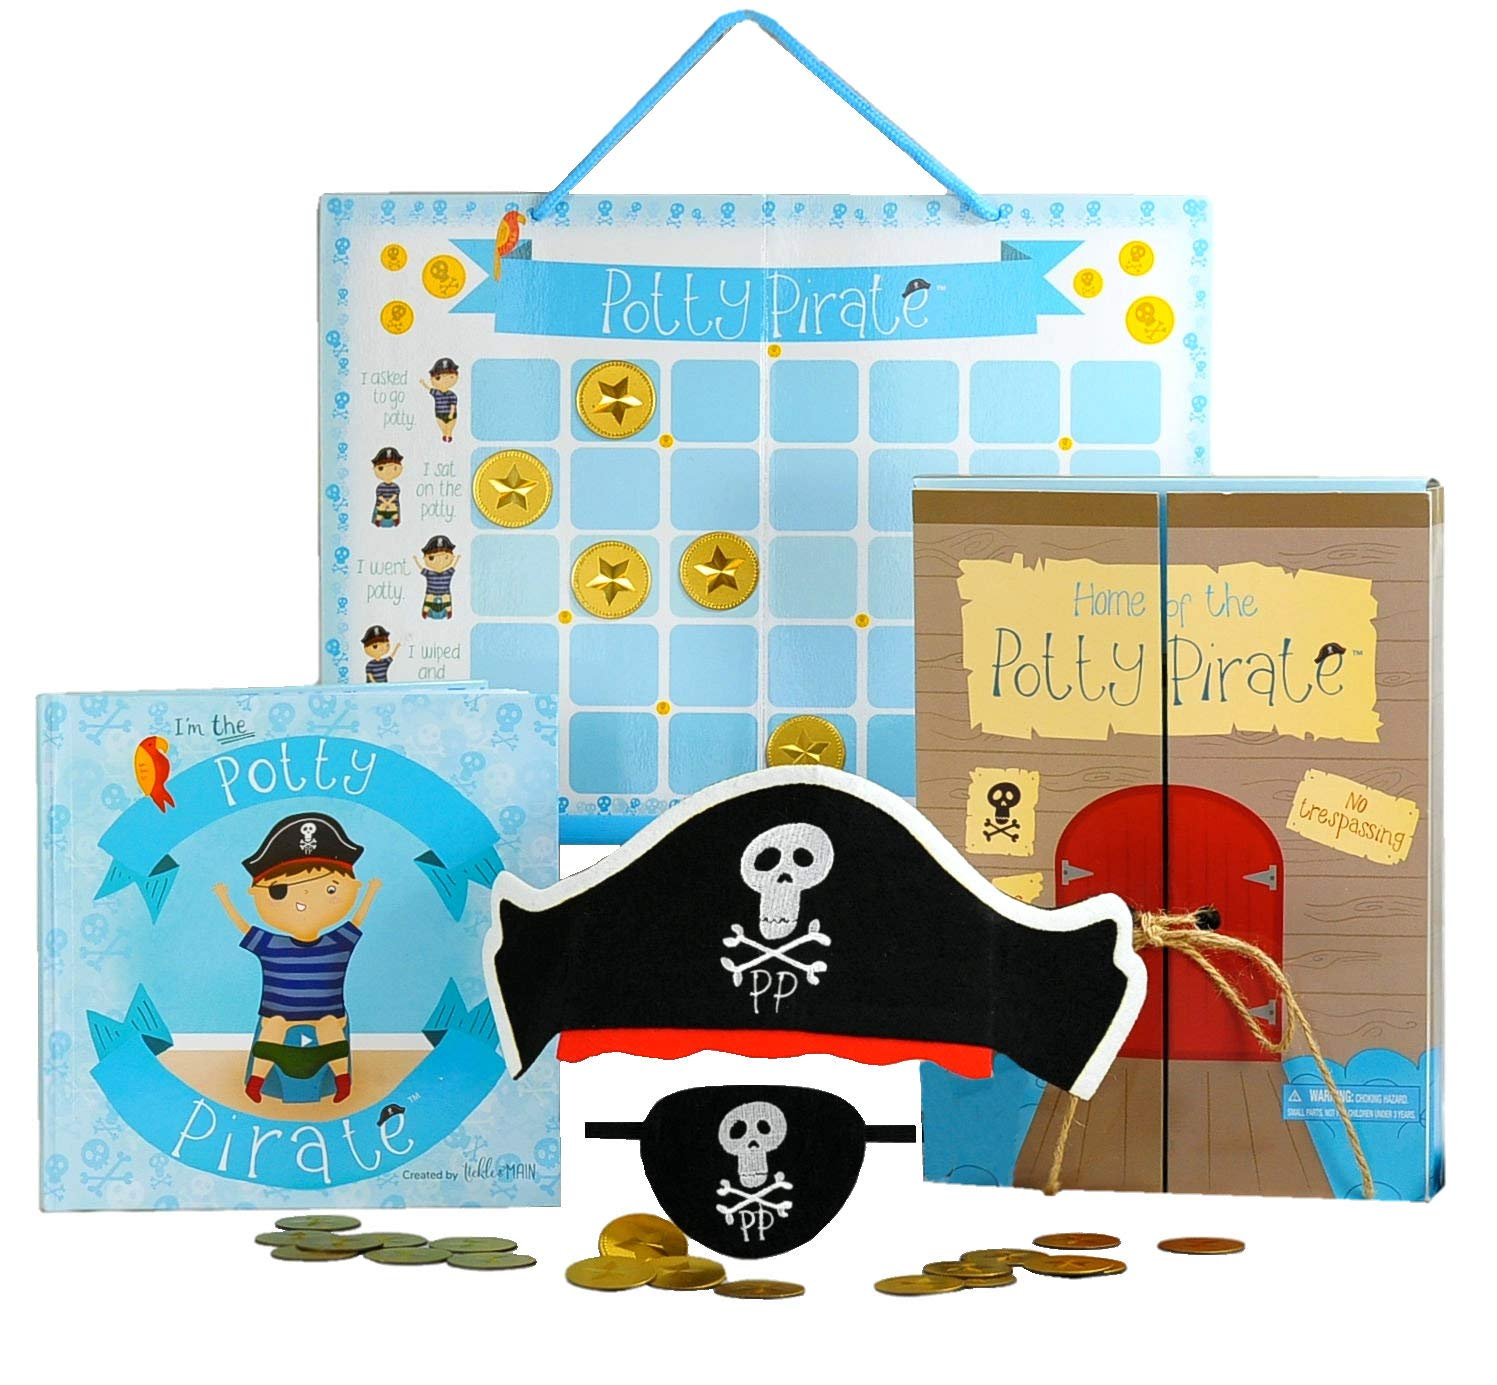 Pirate Potty Training Set with Book, Potty Chart, Reward Magnets, Pirate Hat and Patch for Toddler Boys - Comes in Pirate Ship Box. Tickle & Main